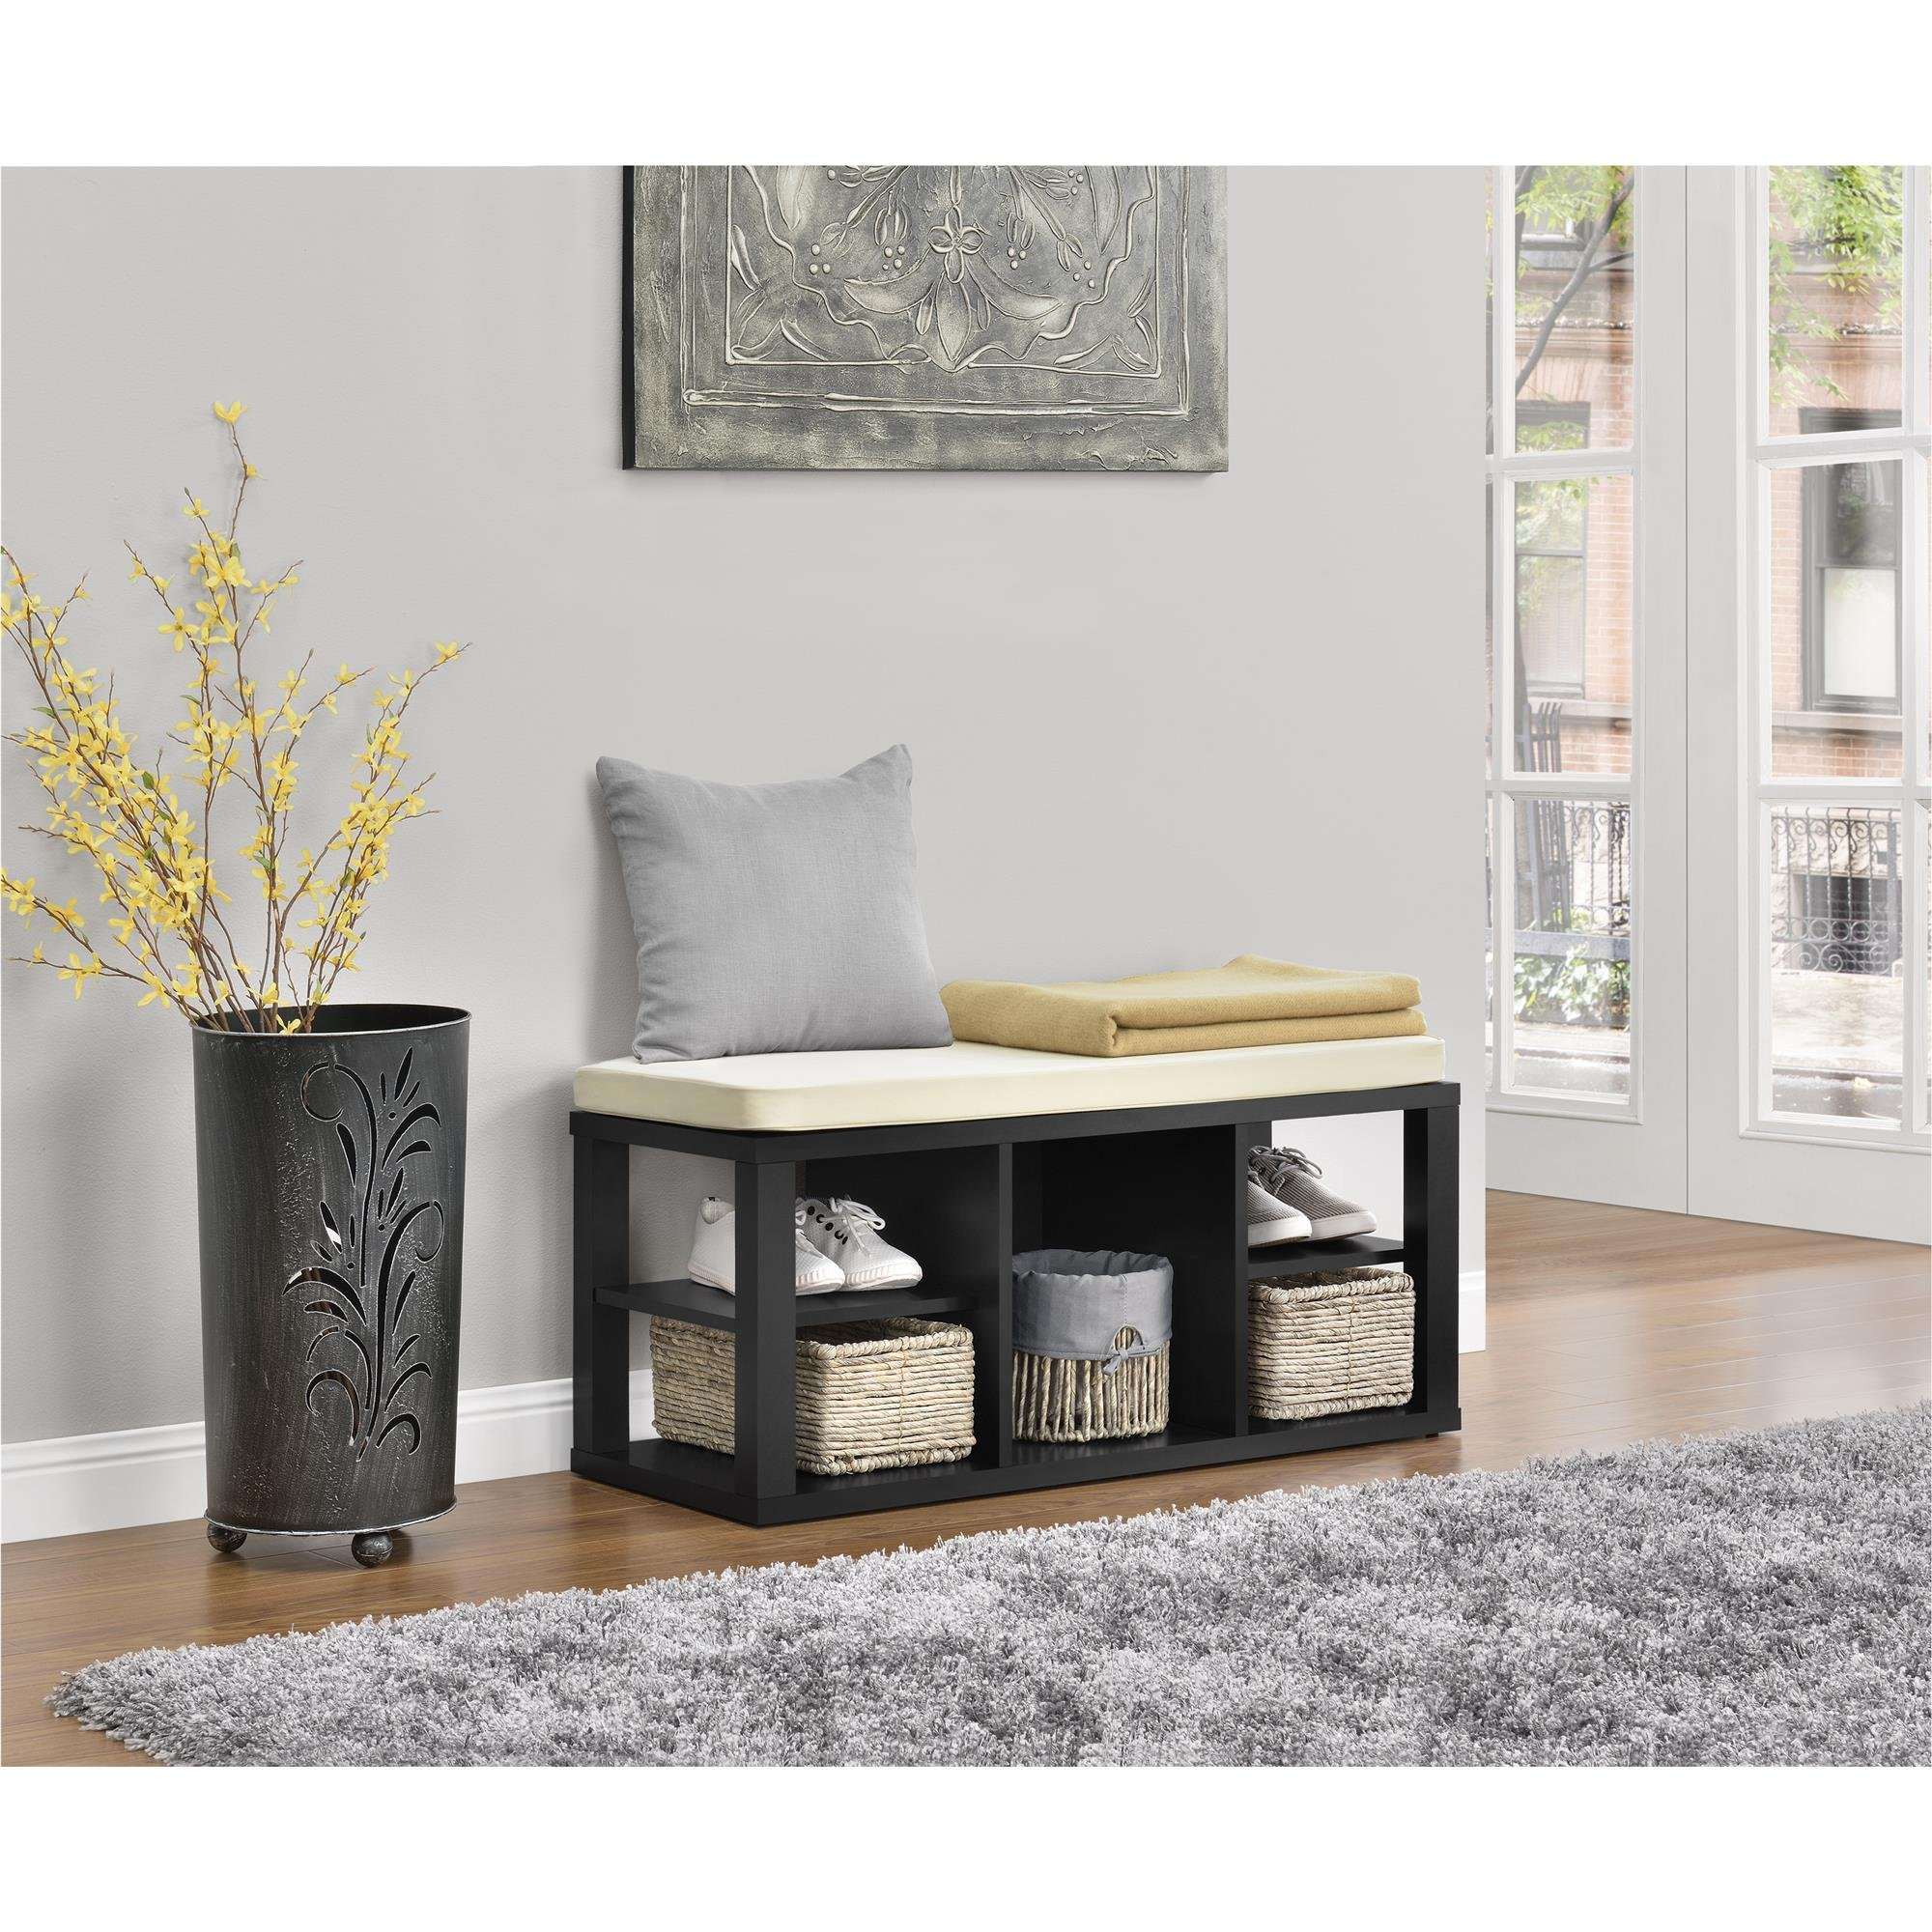 Ameriwood Home Parsons Storage Bench, Black by Ameriwood Home (Image #6)